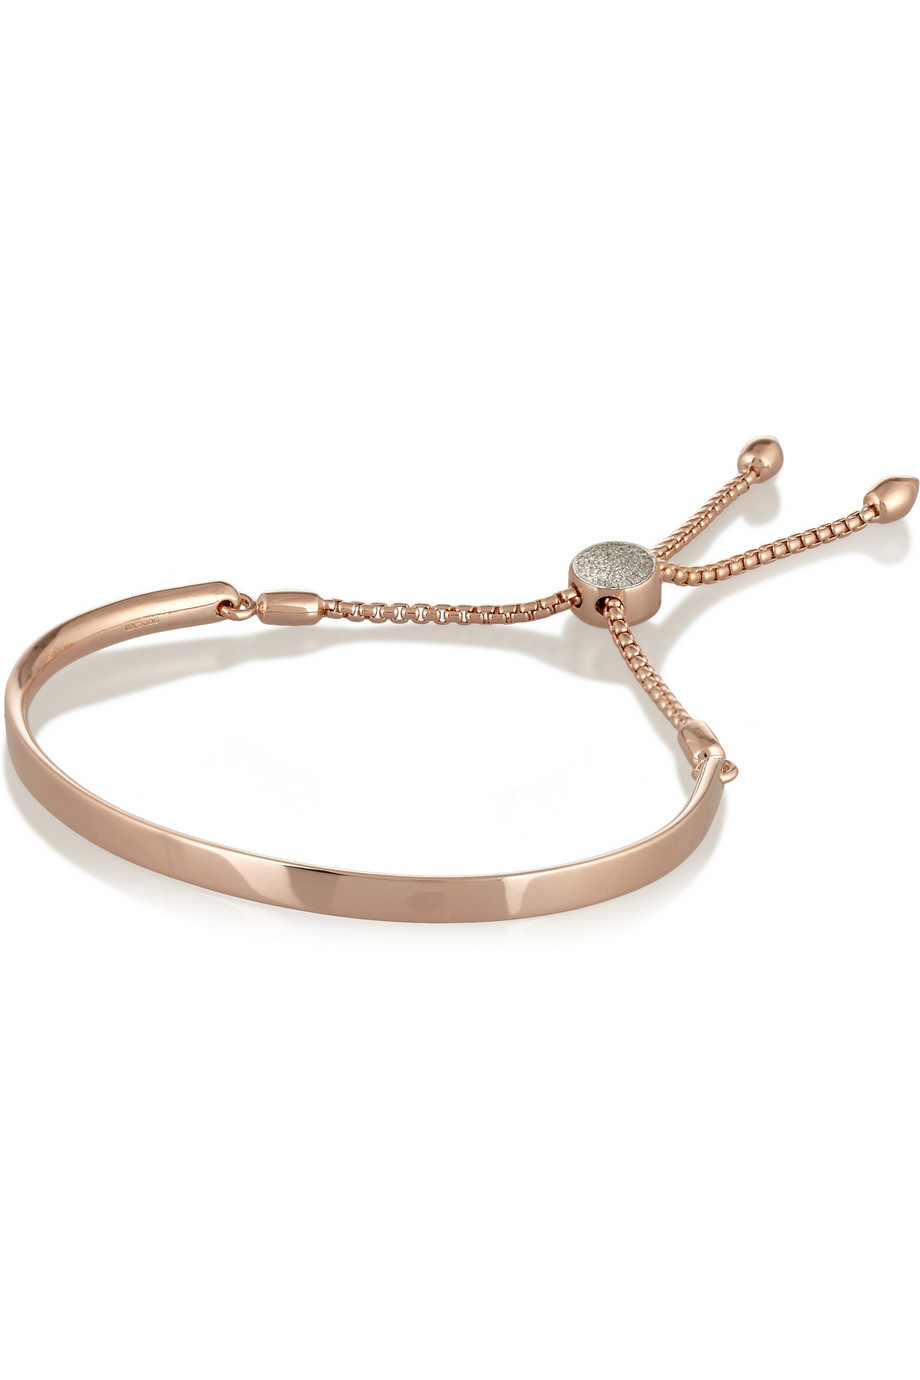 Diamond Anklet With Toe Ring Lc00035 In Anklets From: Monica Vinader Fiji Rose Gold-Plated Diamond